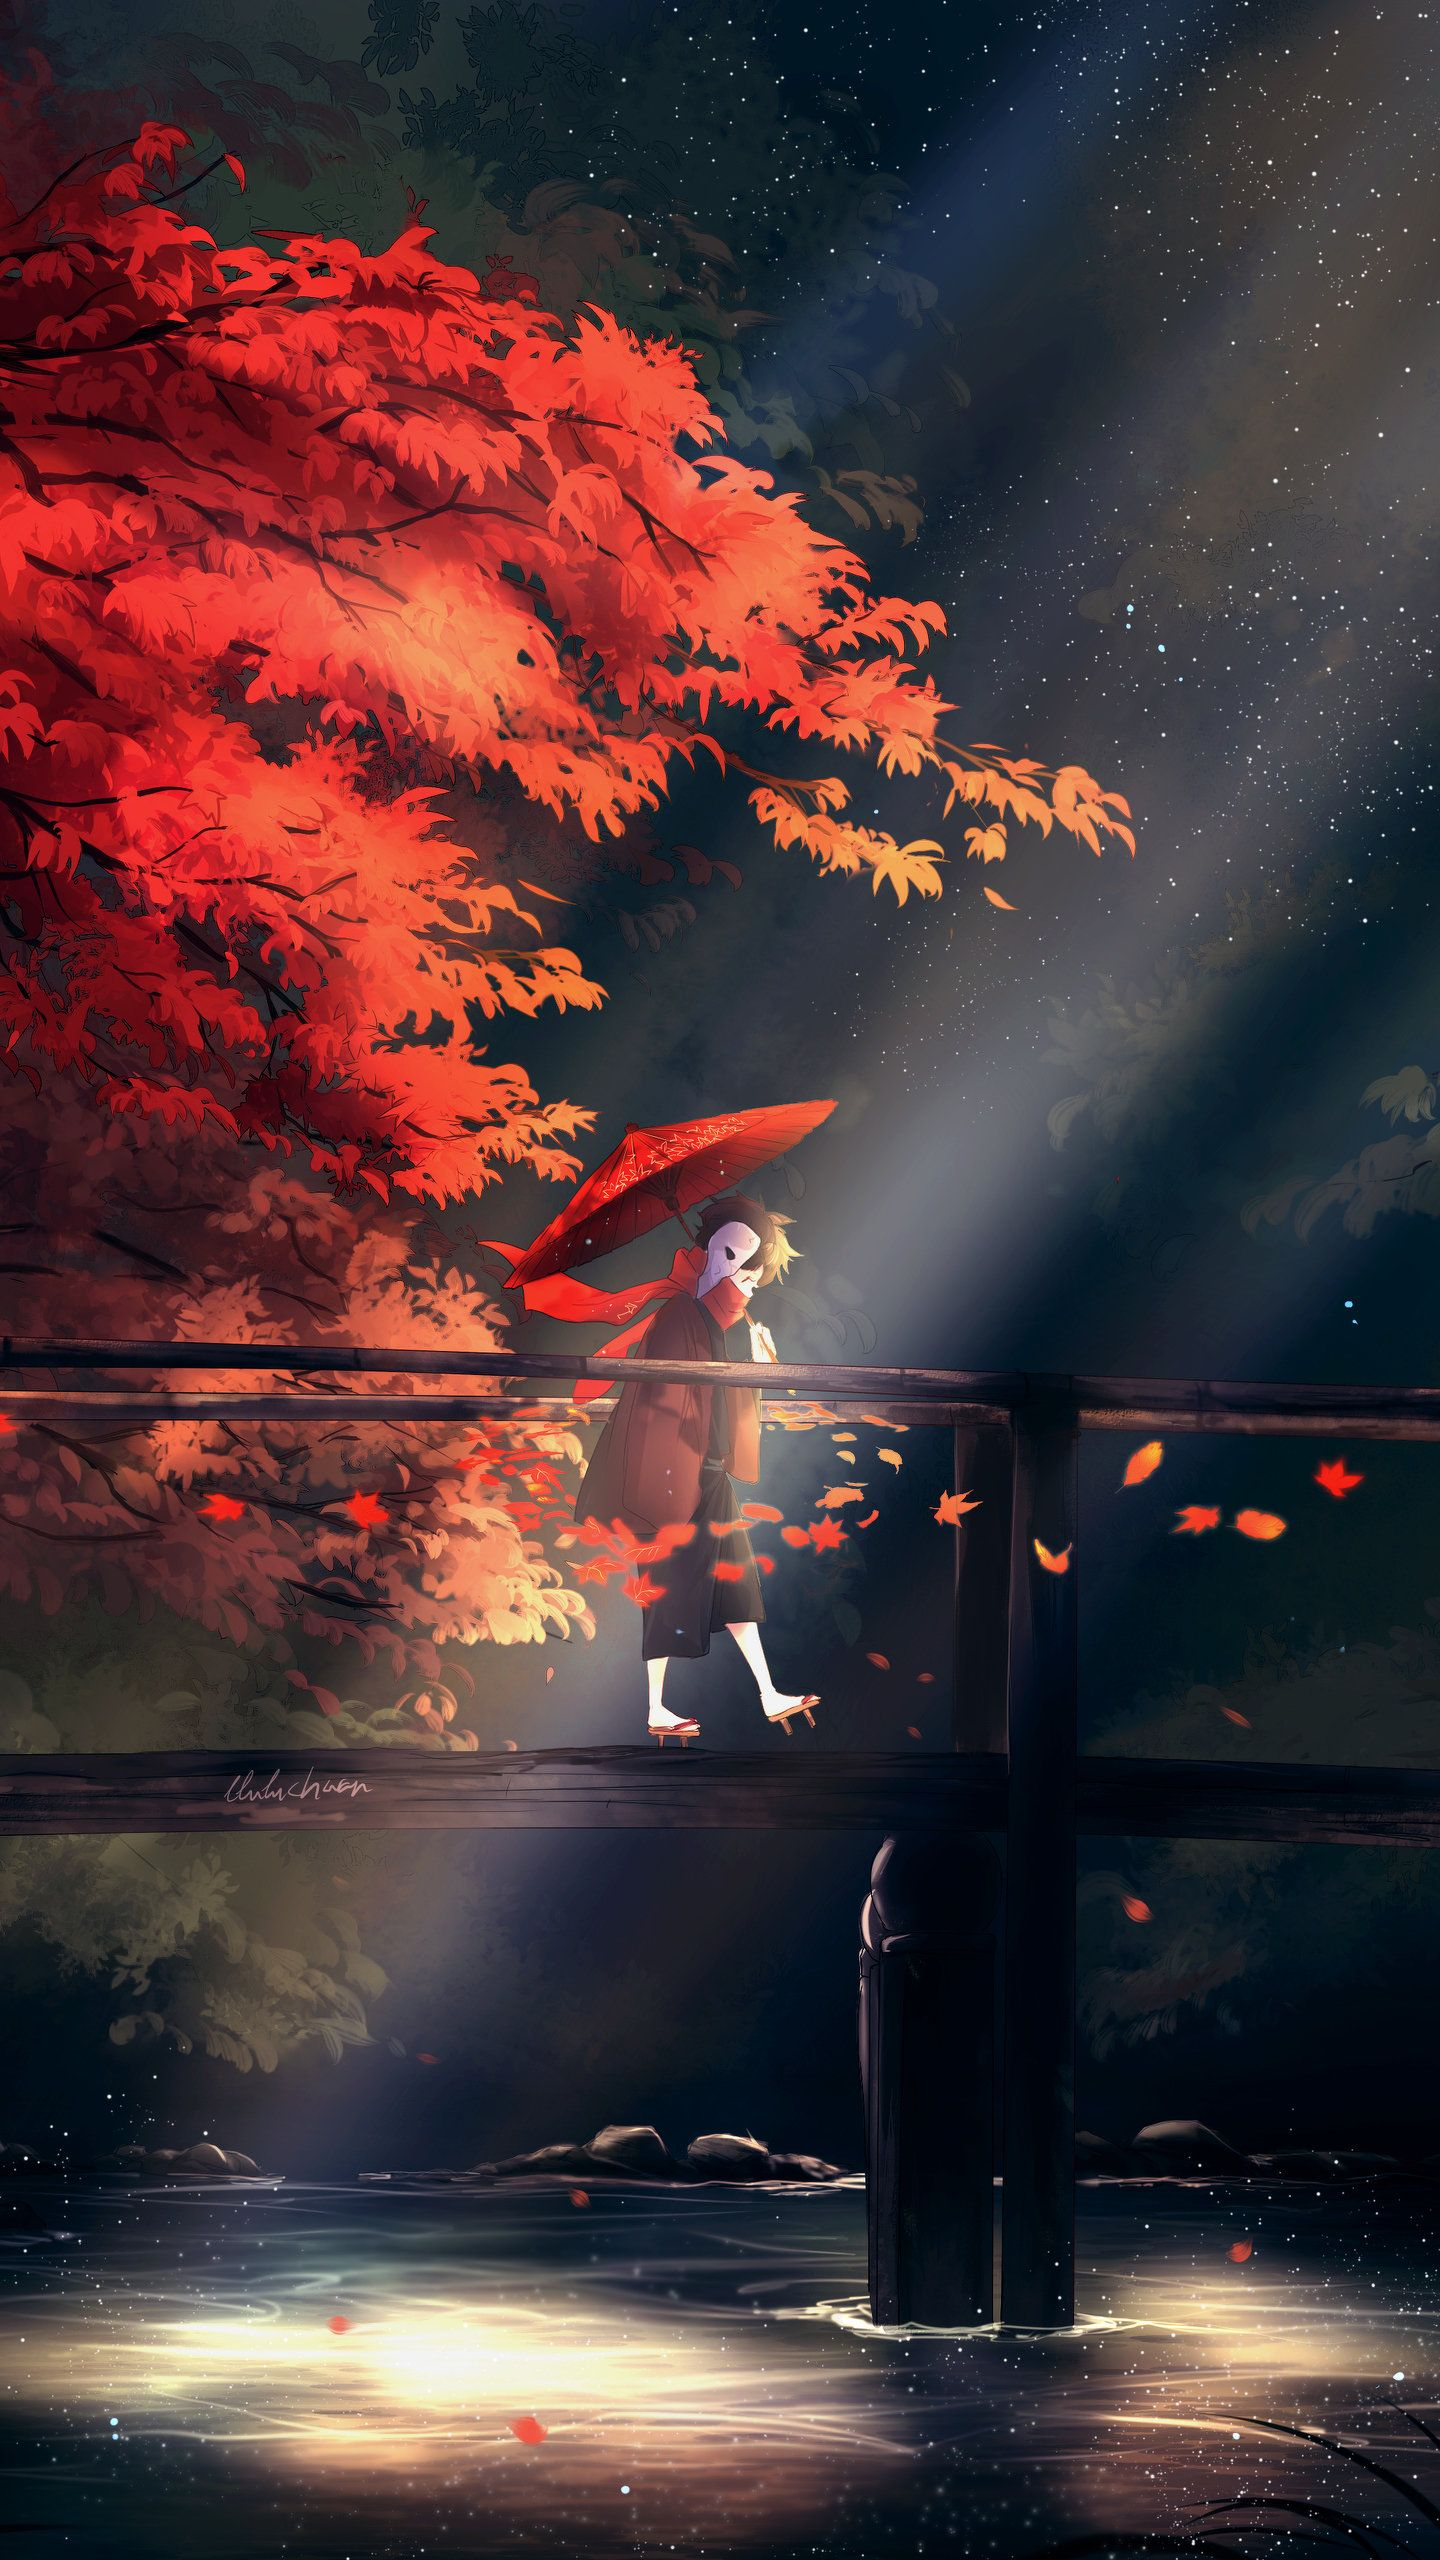 Fall Art Hd Artist Wallpapers Photos And Pictures Id 44979 Phong Cảnh Anime Nghệ Thuật Anime